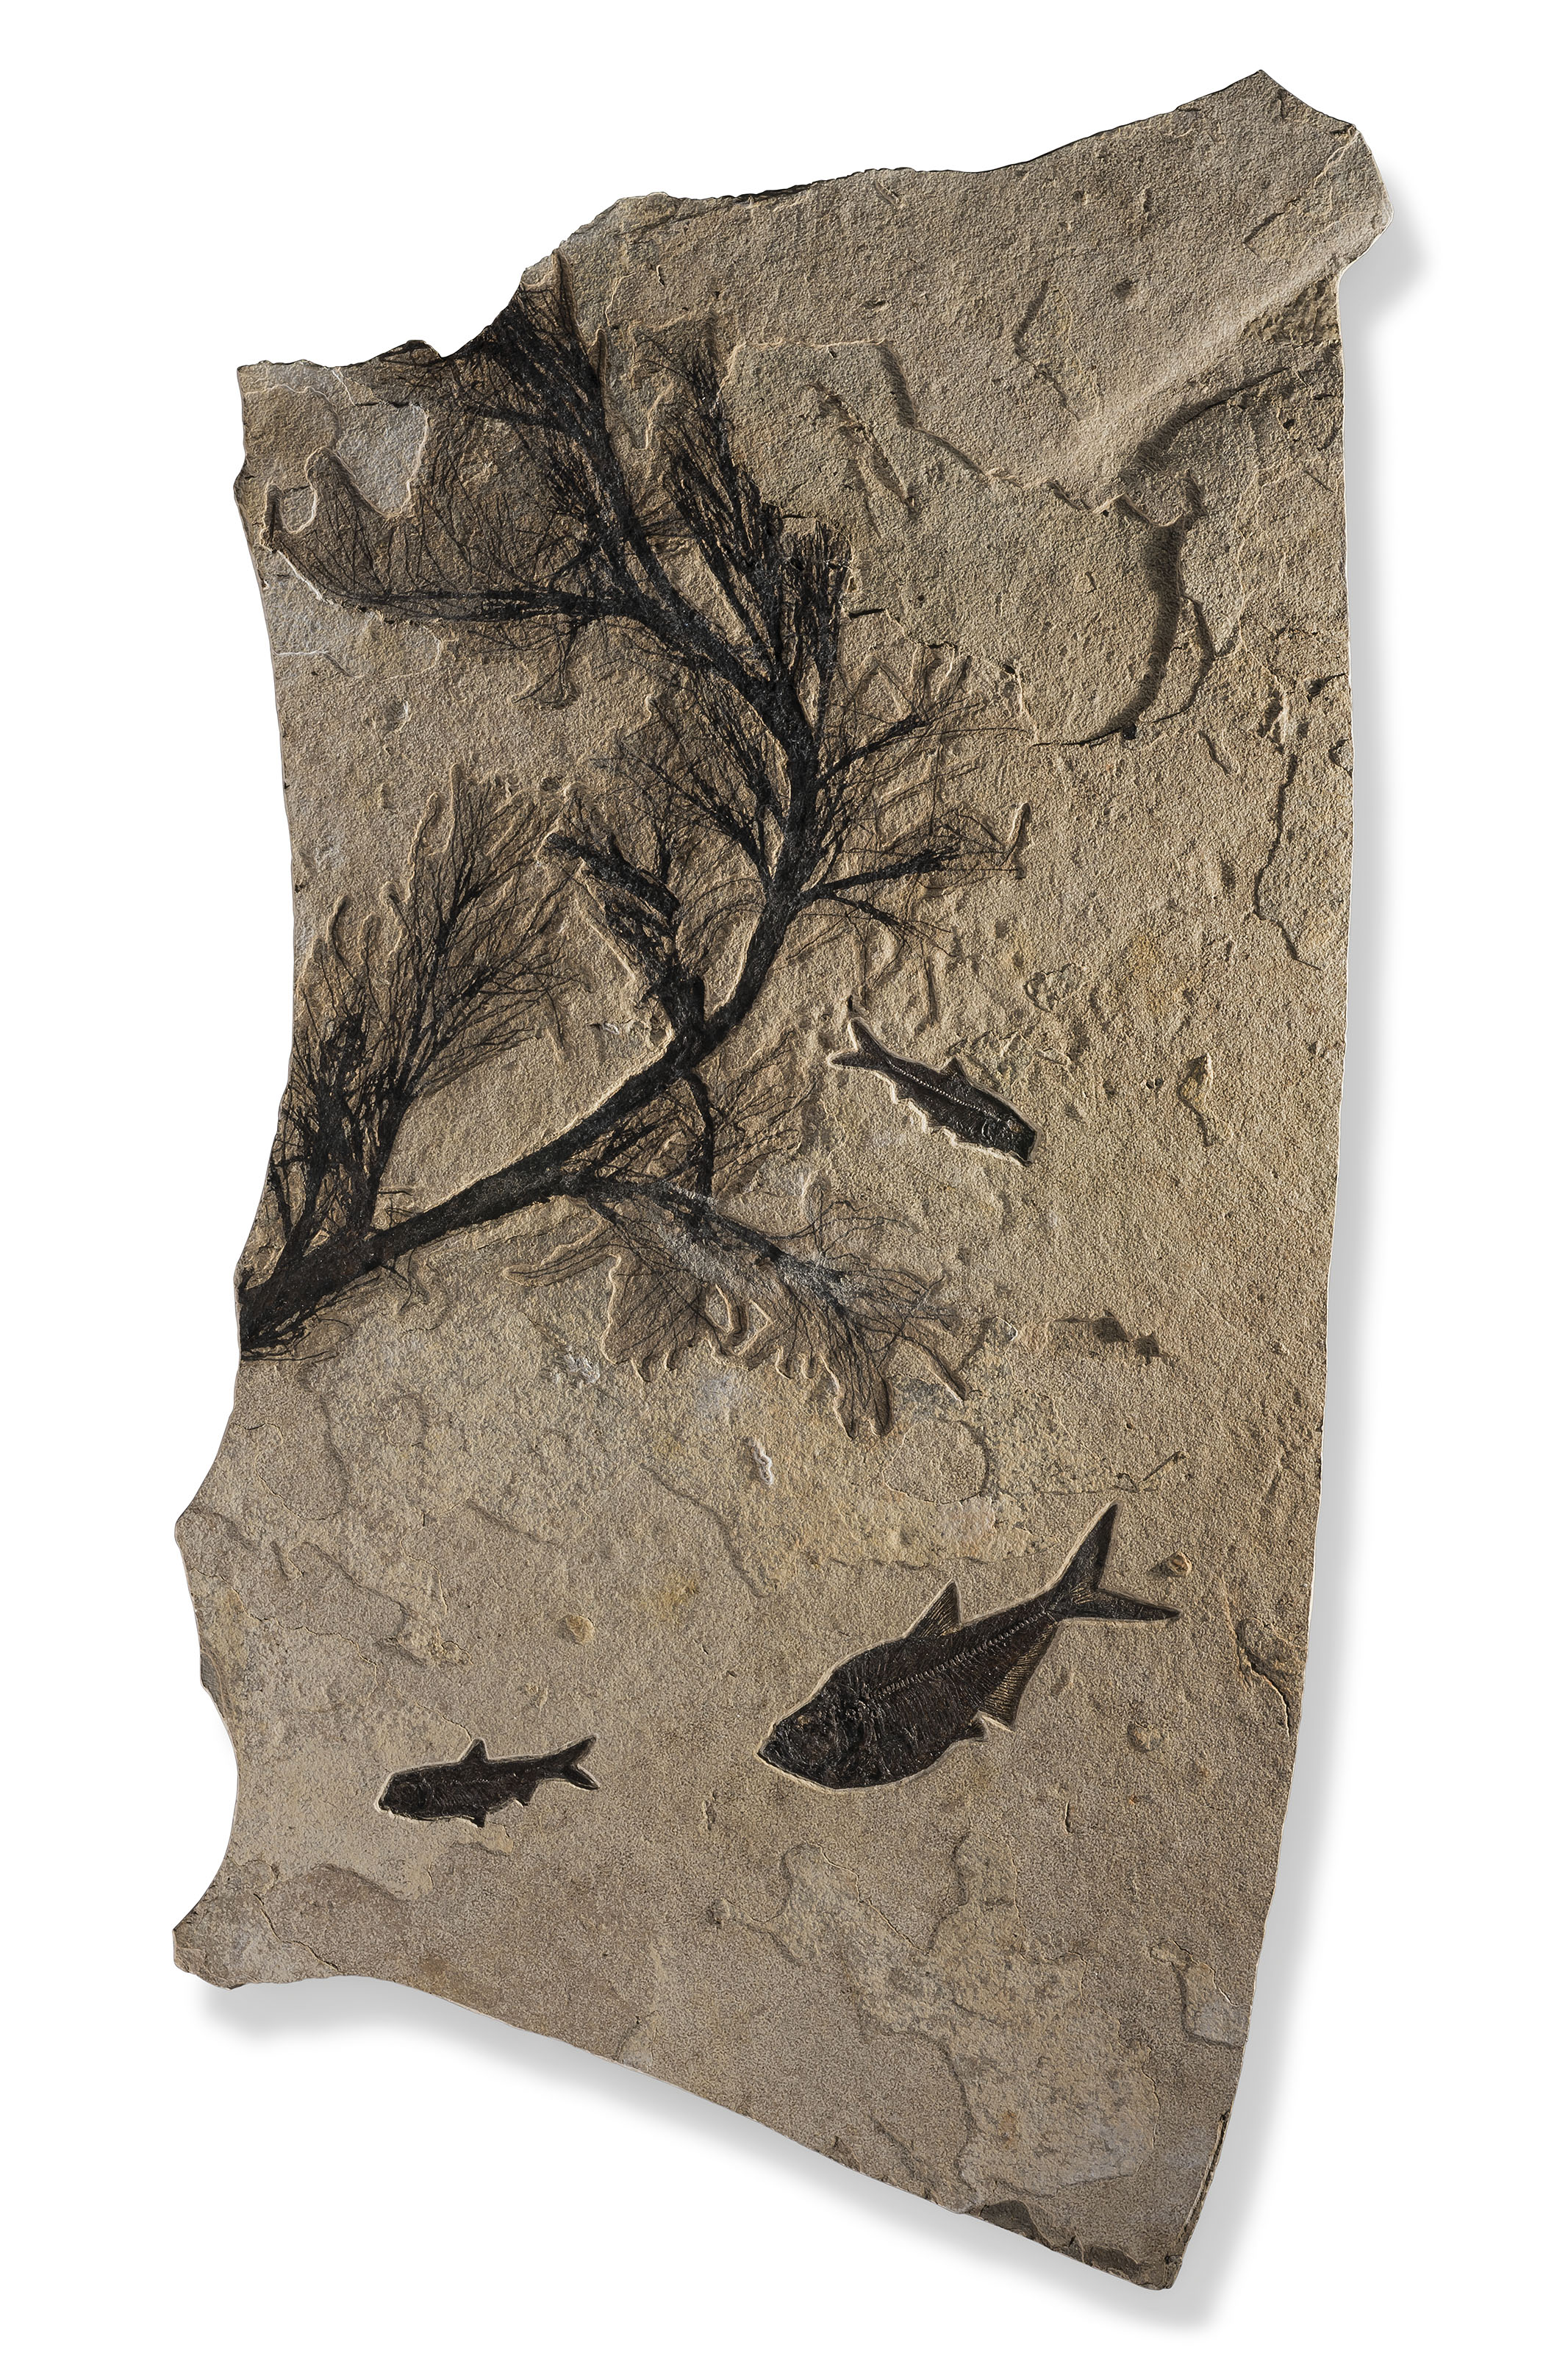 A fossil palm flower and fish, Green River, Wyoming, USA, from the Eocene (c. 50 million years ago). 48 x 27 in (122 x 69 cm). Sold for £18,750 on 24 May 2019 at Christie's in London